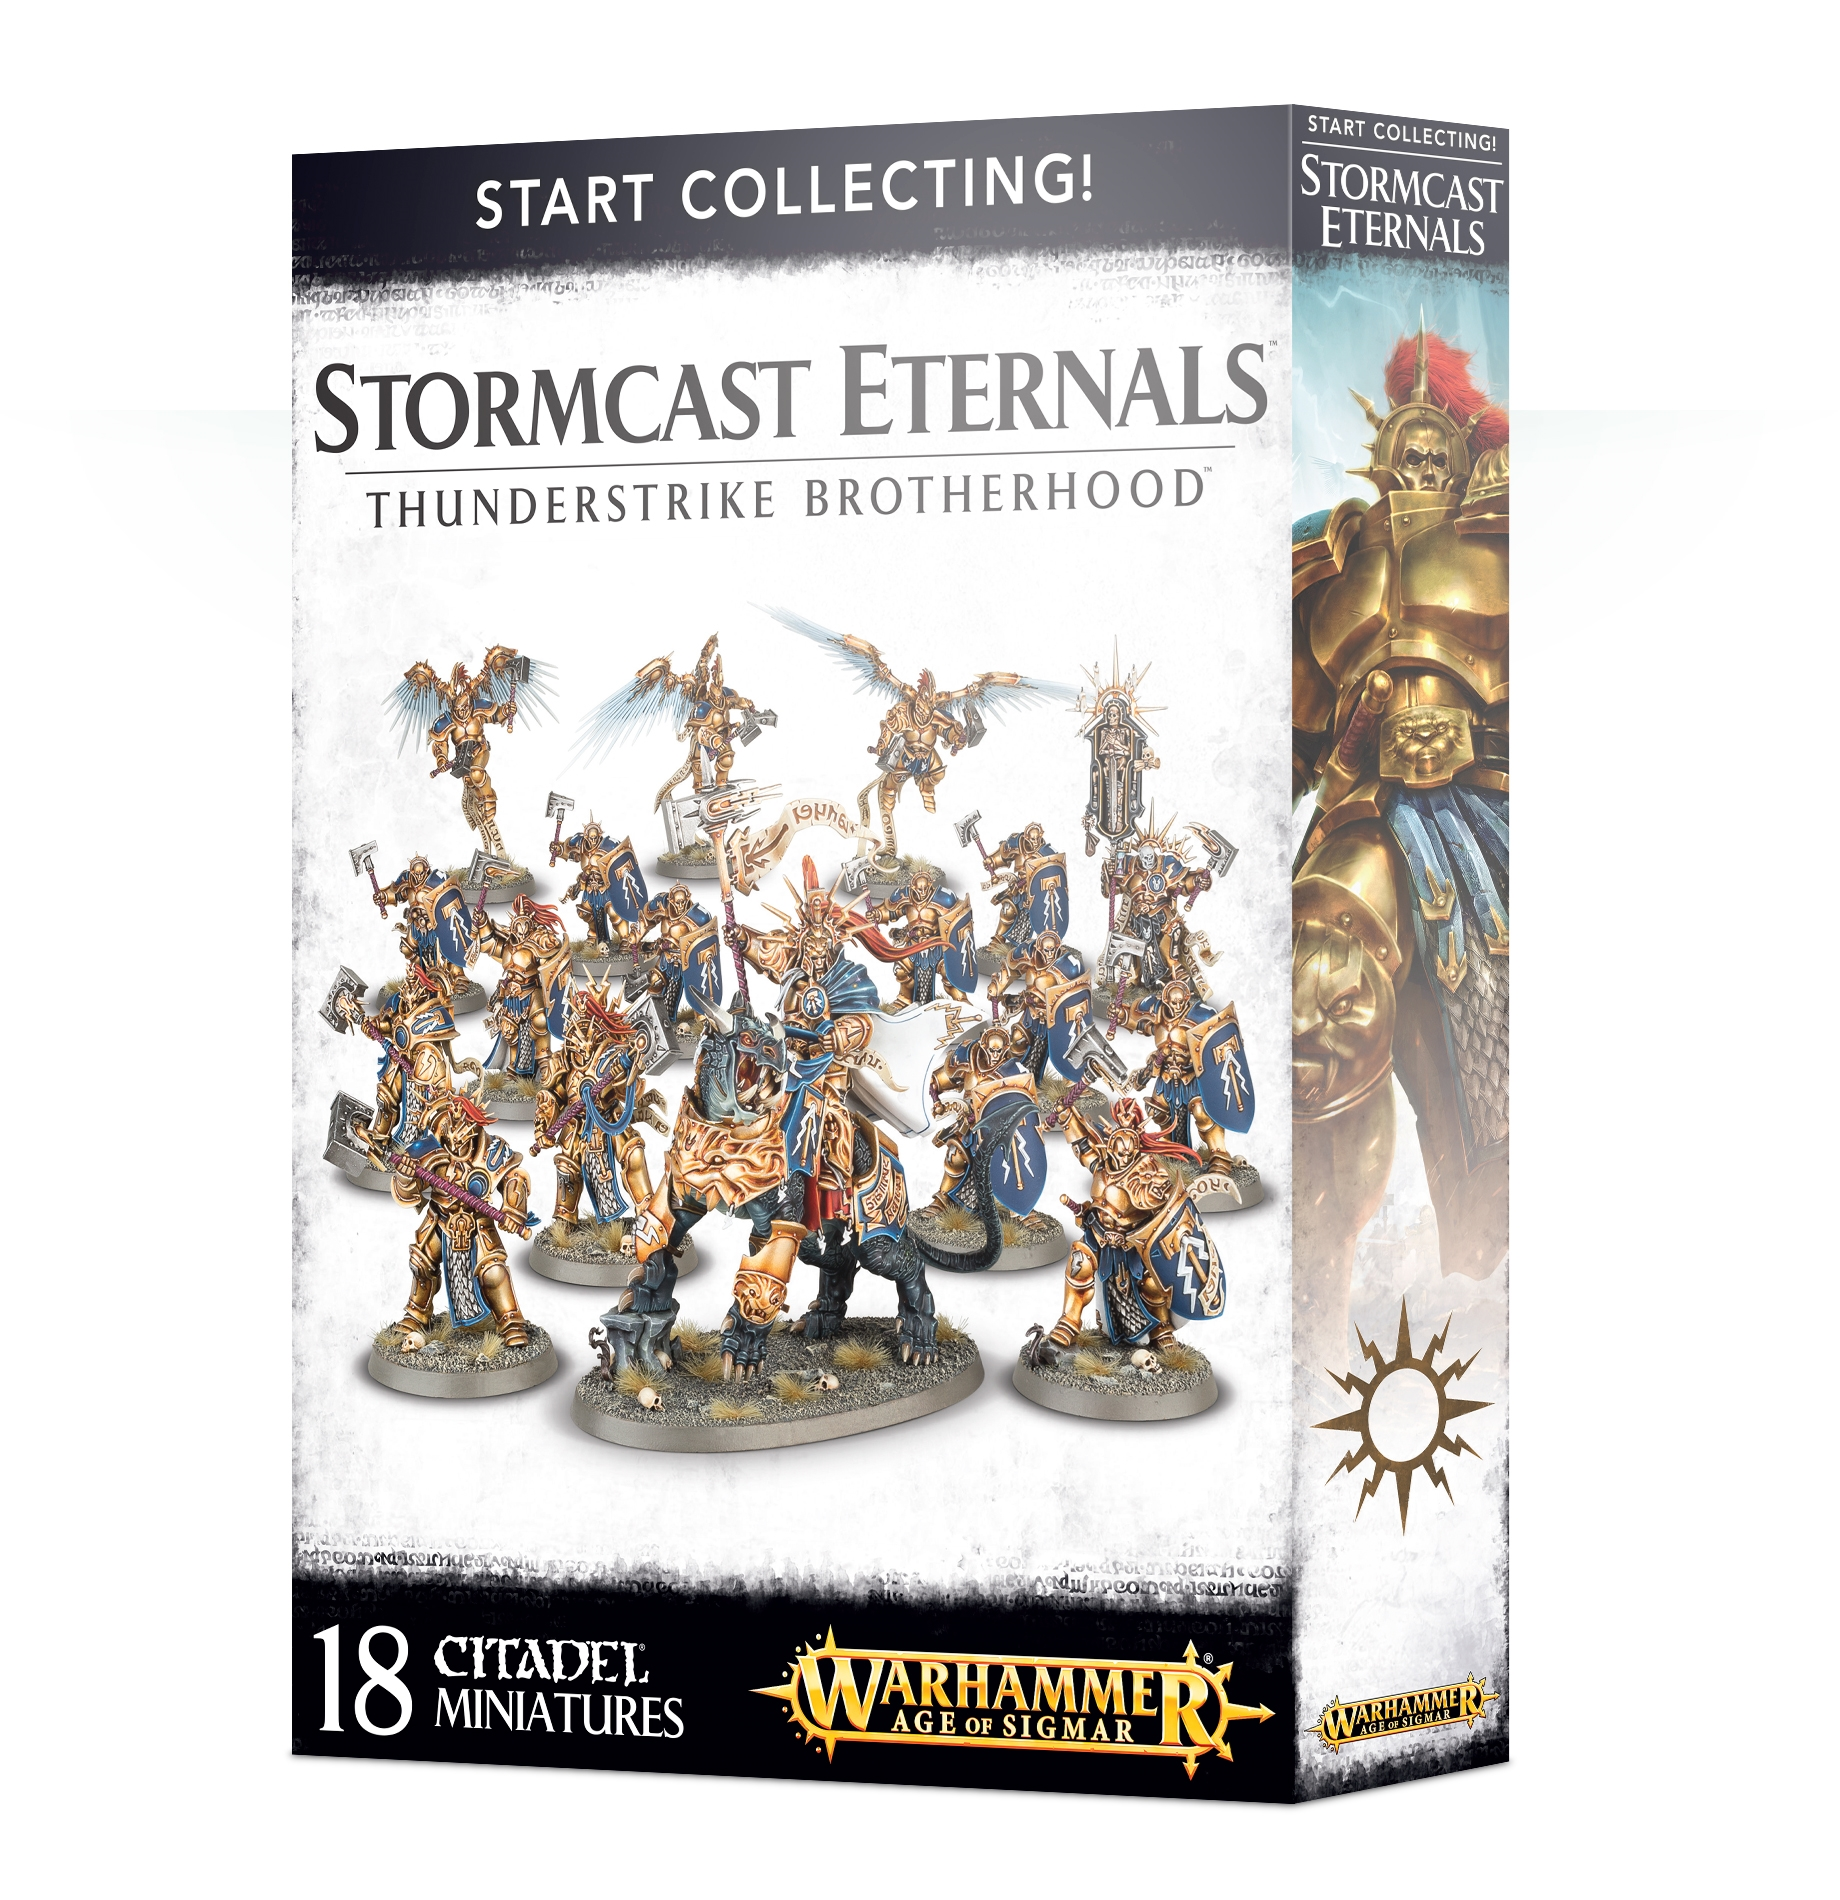 Warhammer Age of Sigmar: Start Collecting! Thunderstrike Brotherhood